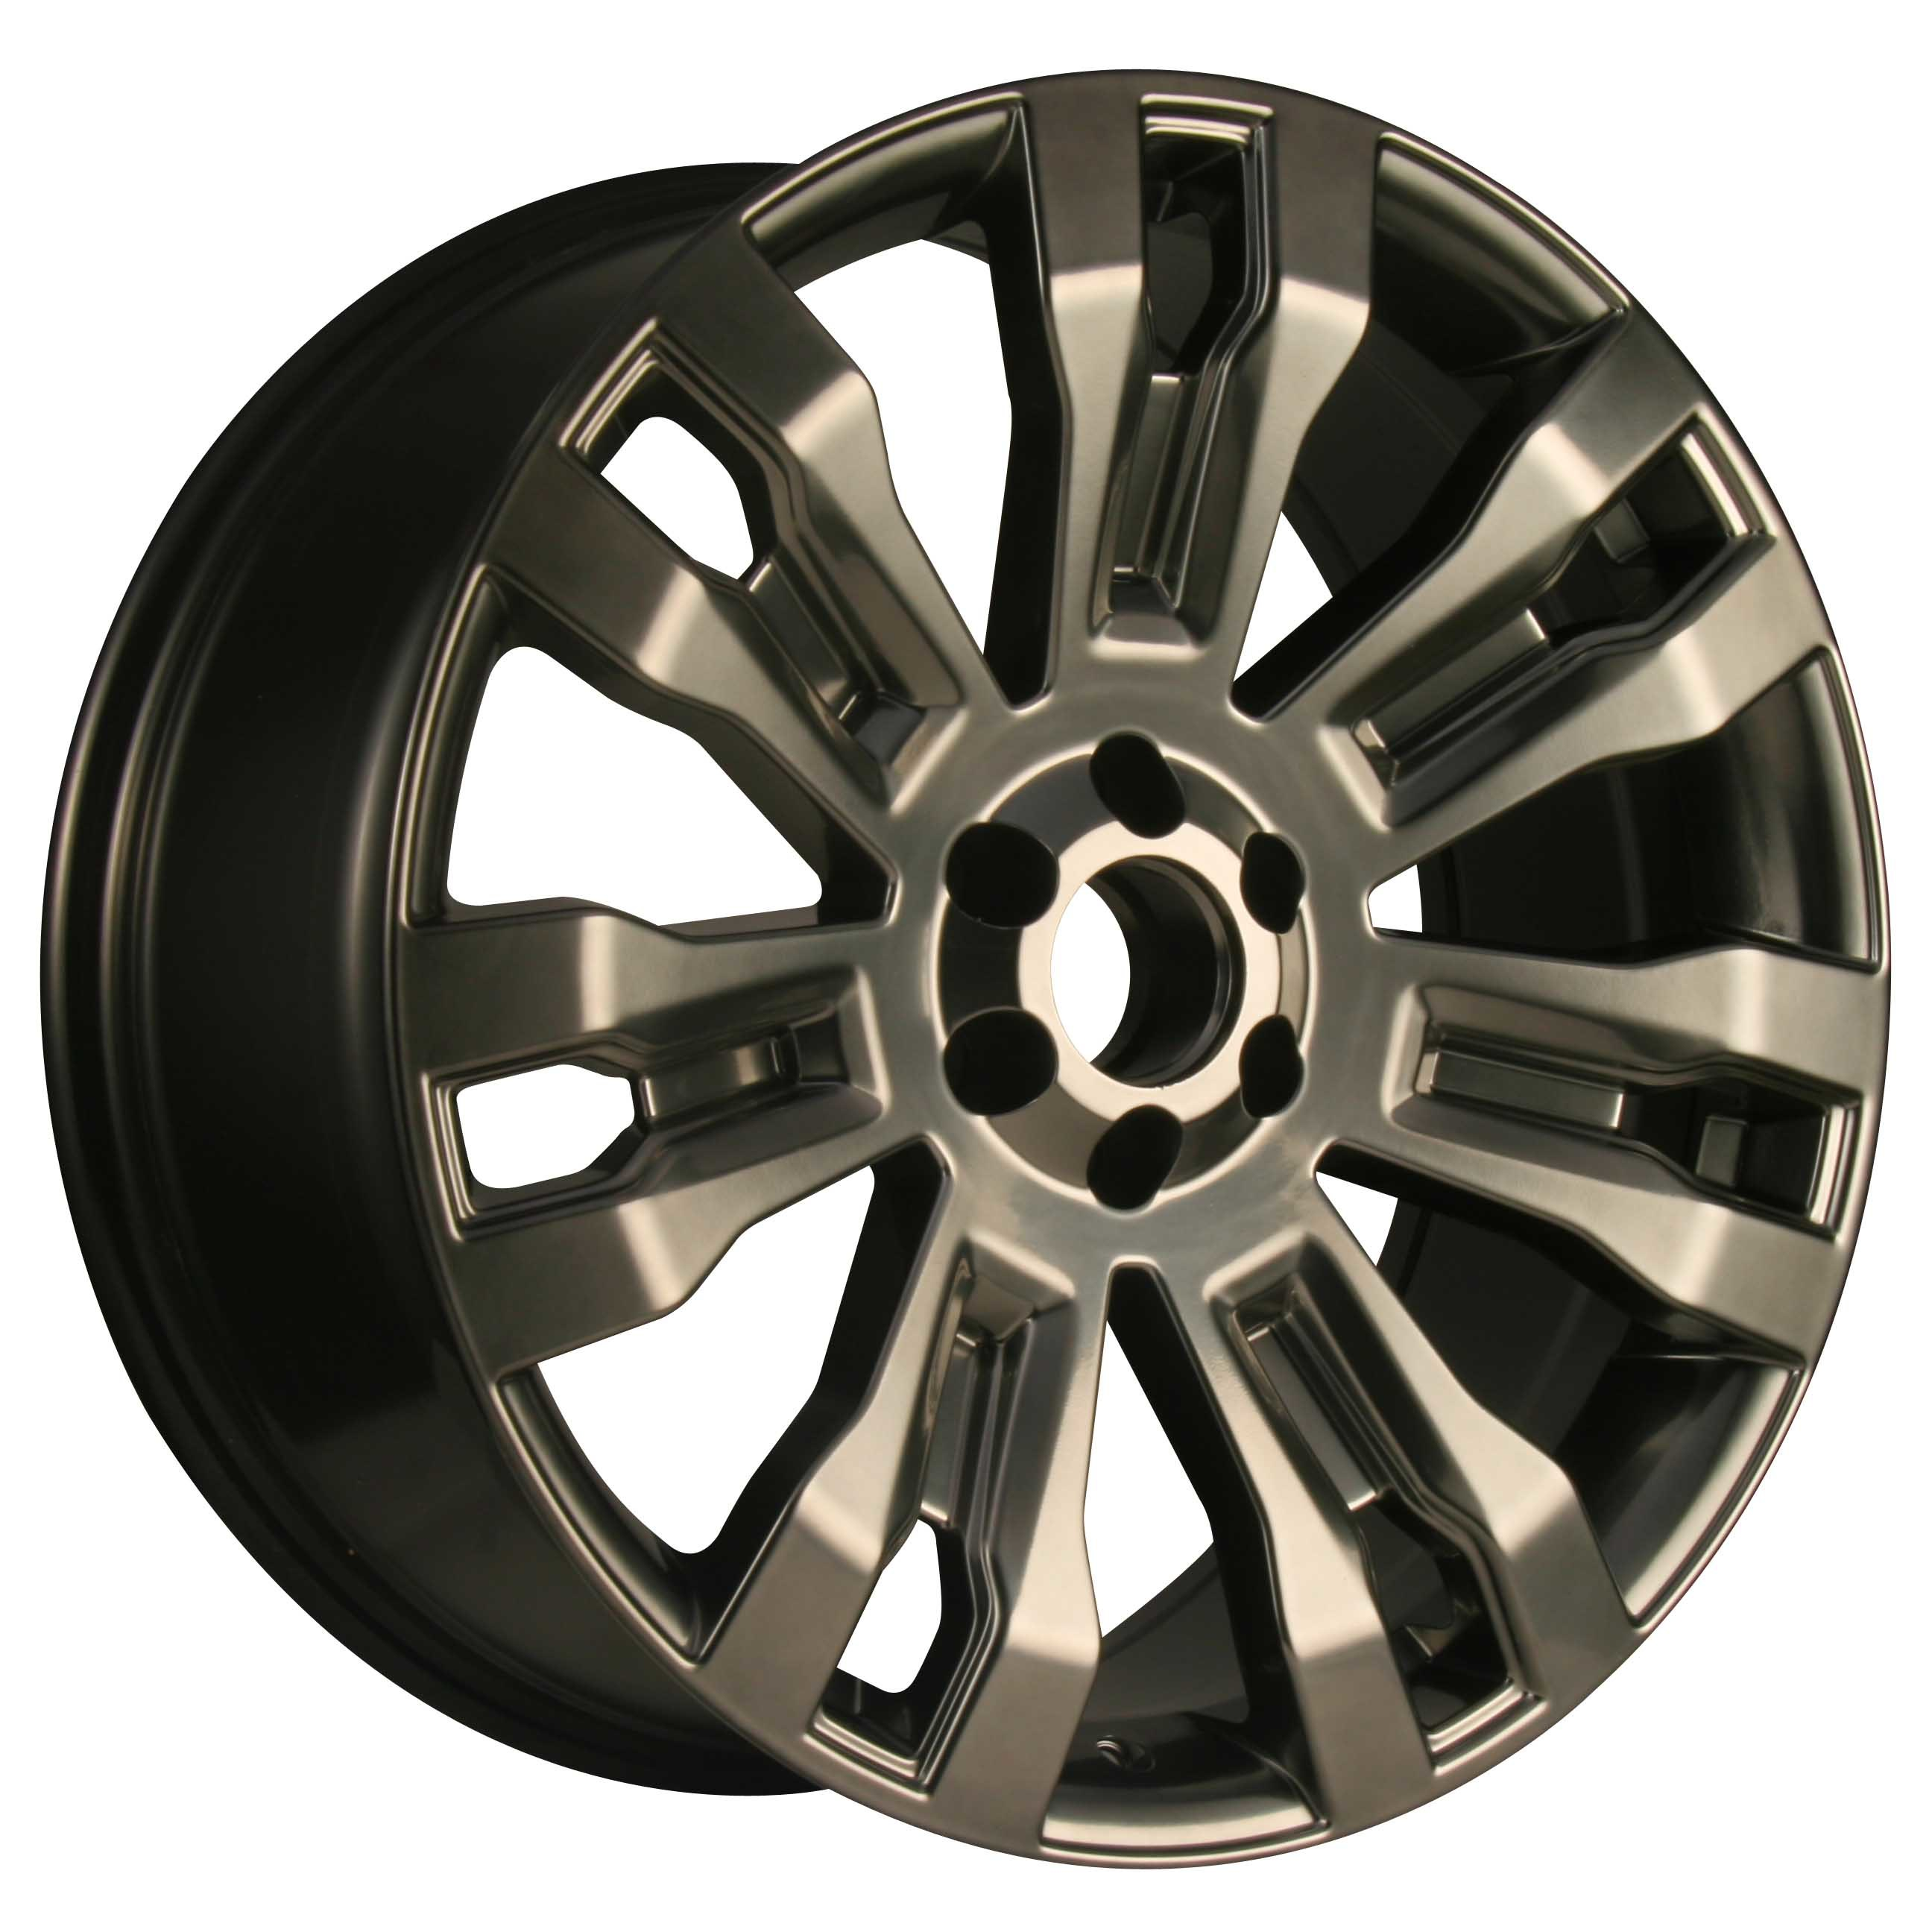 20inch and 22inch Alloy Wheel Replica Wheel for Nissan 2015 Armada